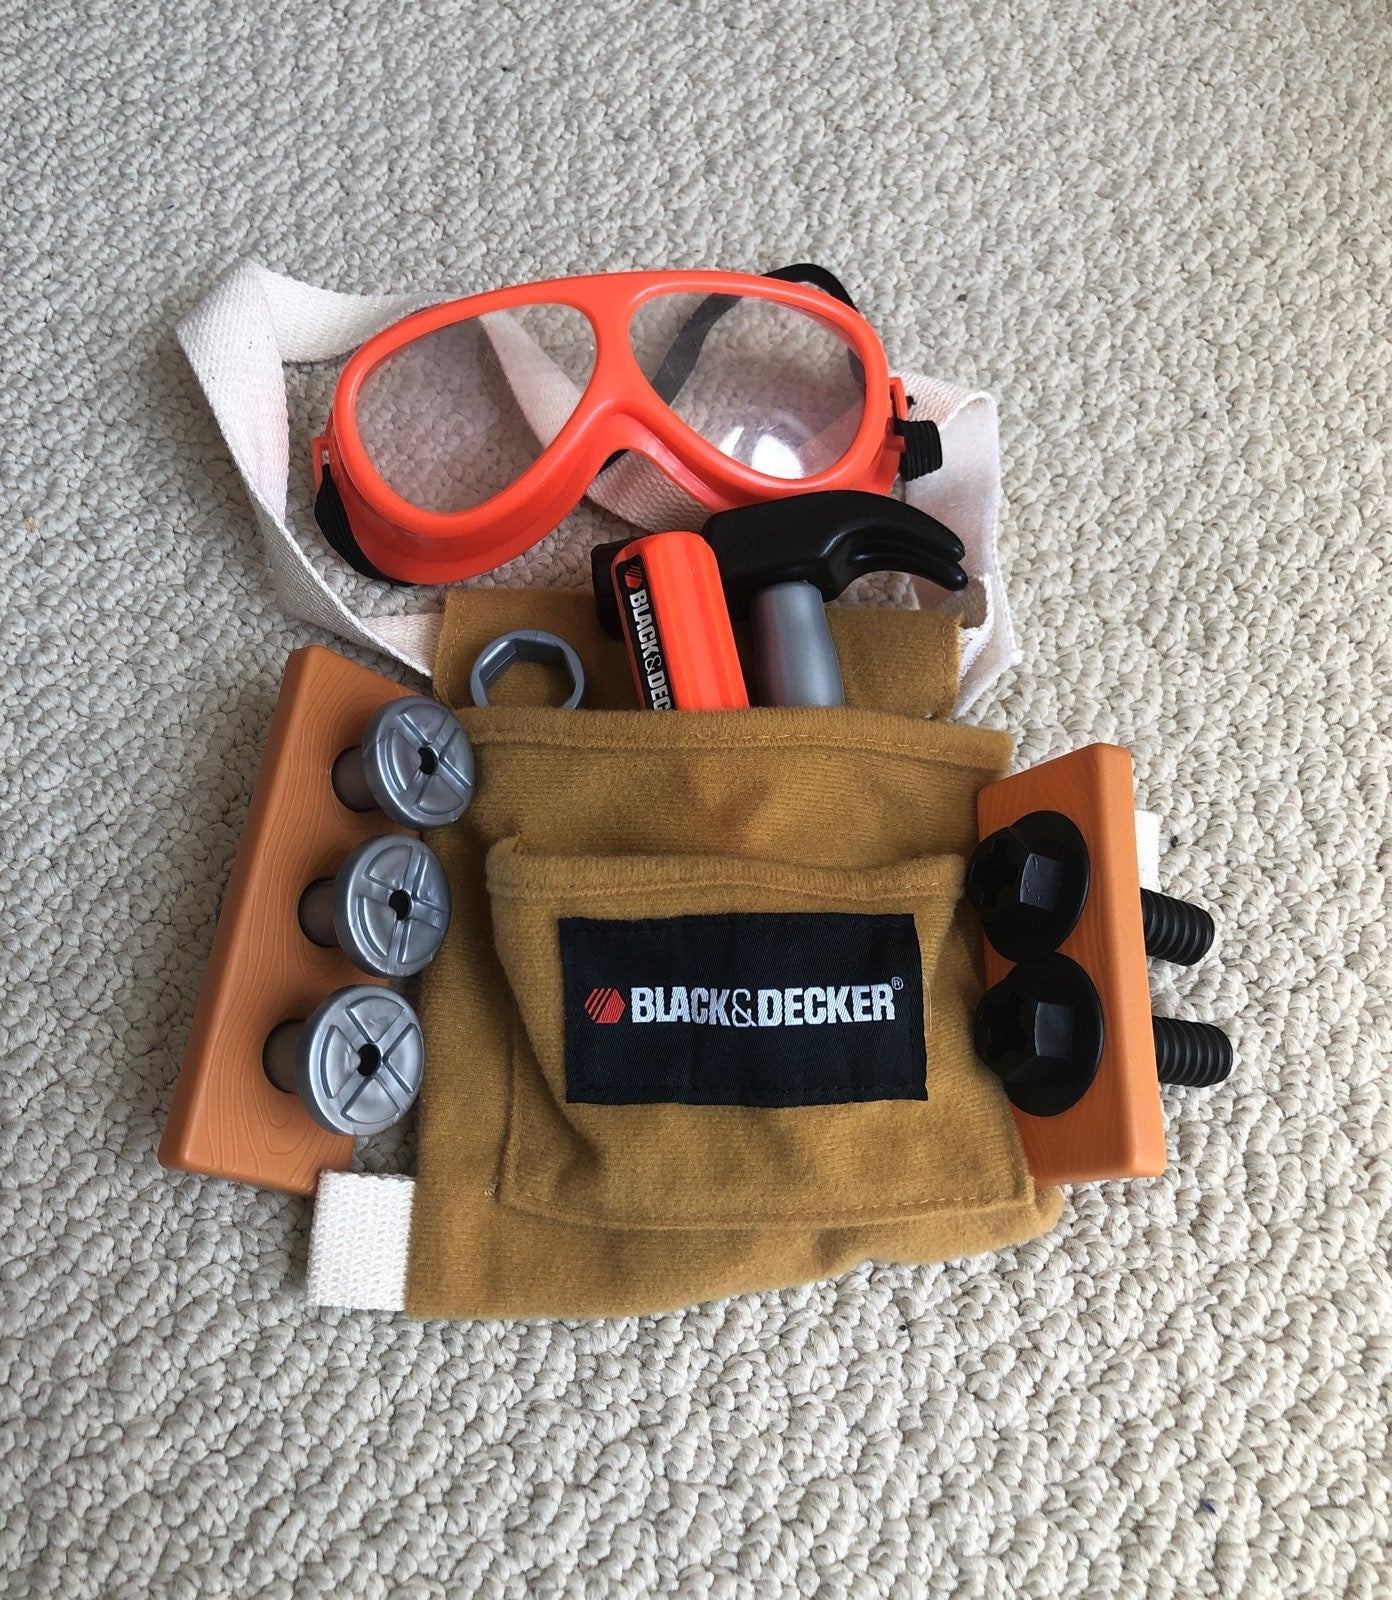 Black and decker toy tool belt